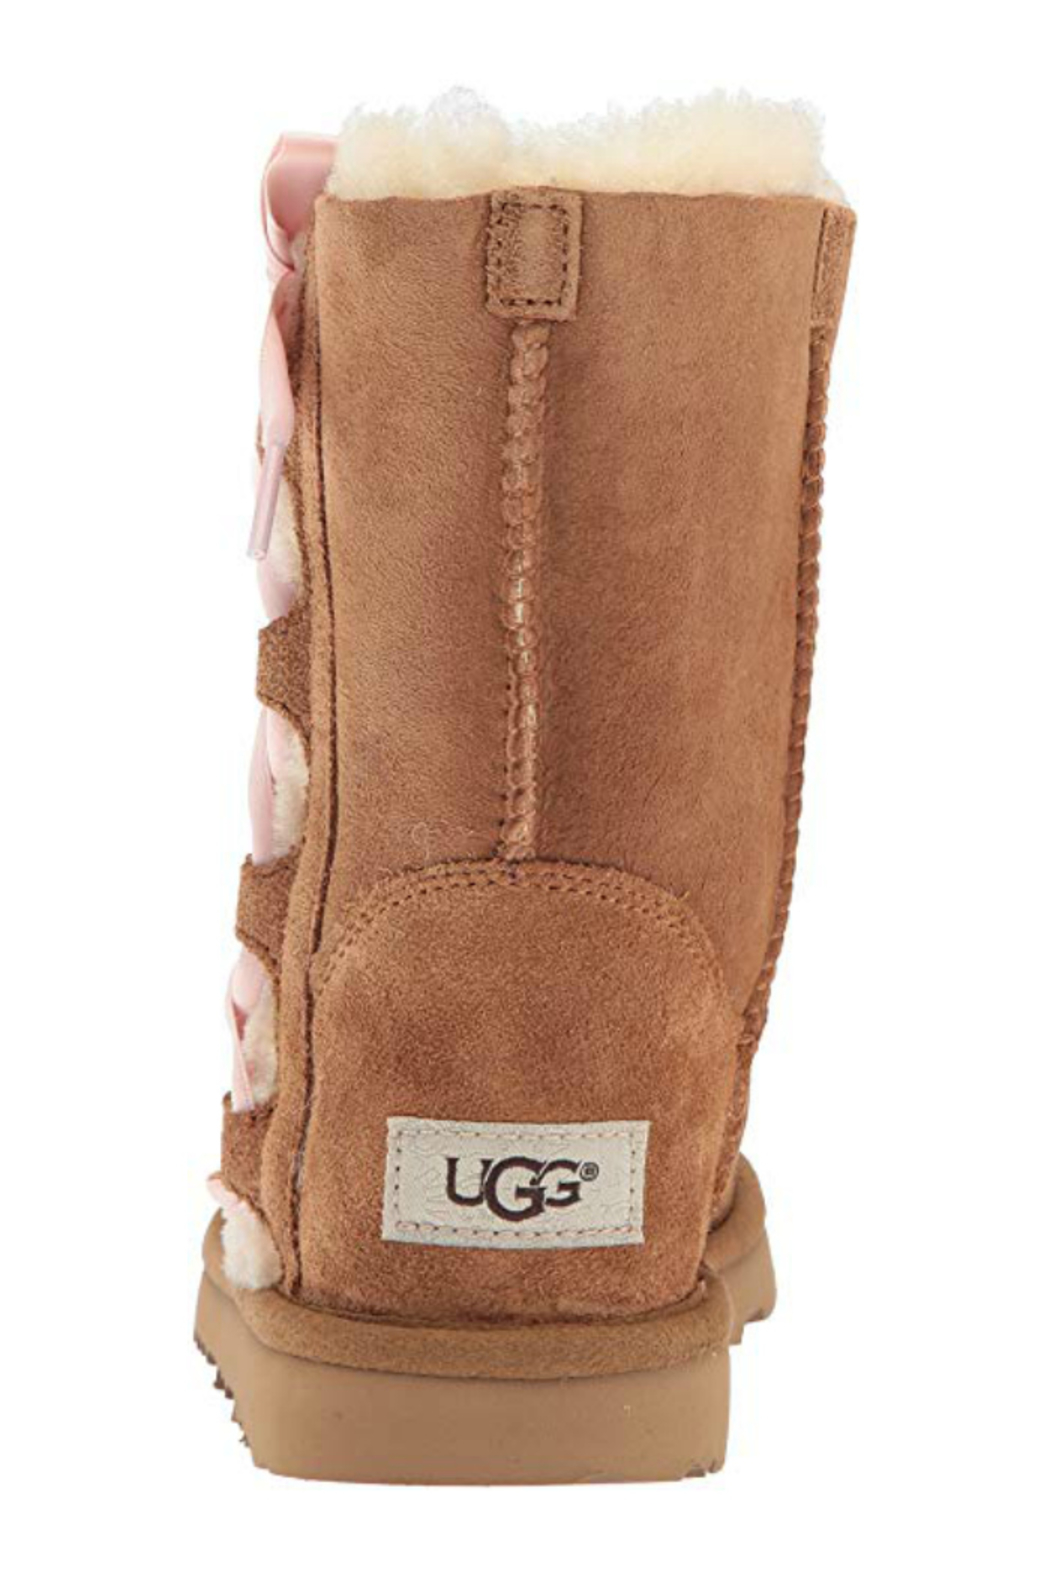 UGG Australia TODDLER PALA - Back Cropped Image